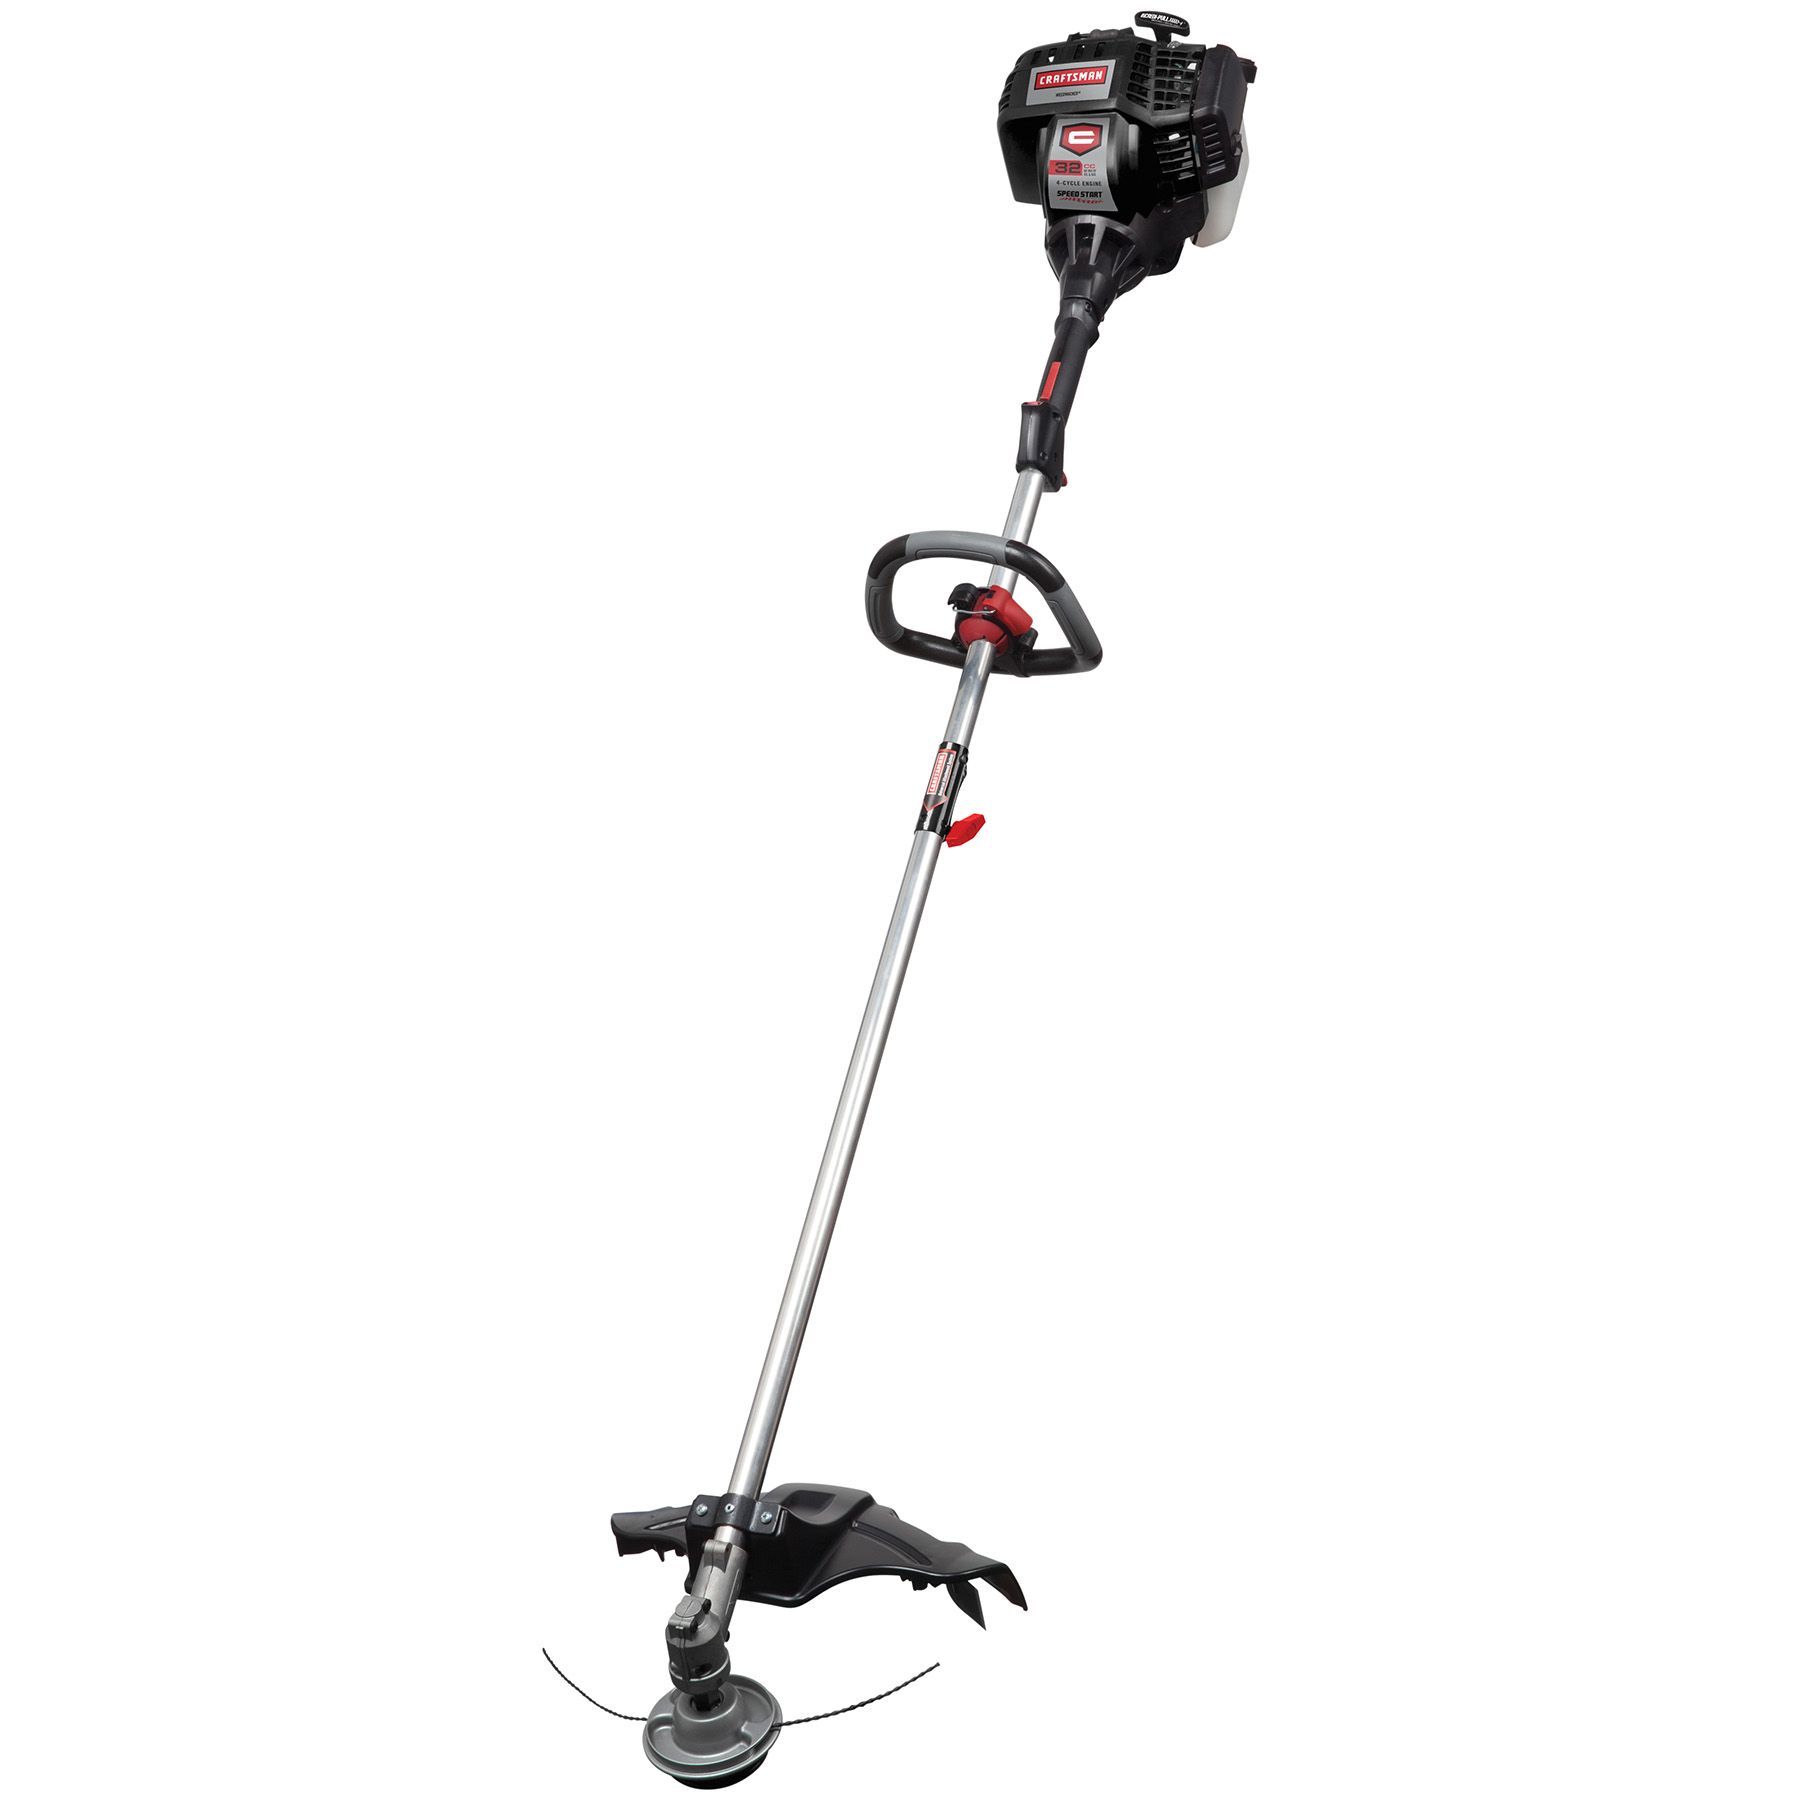 """craftsman 73193 32cc 4 cycle gas trimmer sears outlet rh searsoutlet com Craftsman Weedwacker 17"""" 25Cc Parts Craftsman Weedwacker 32Cc Parts"""